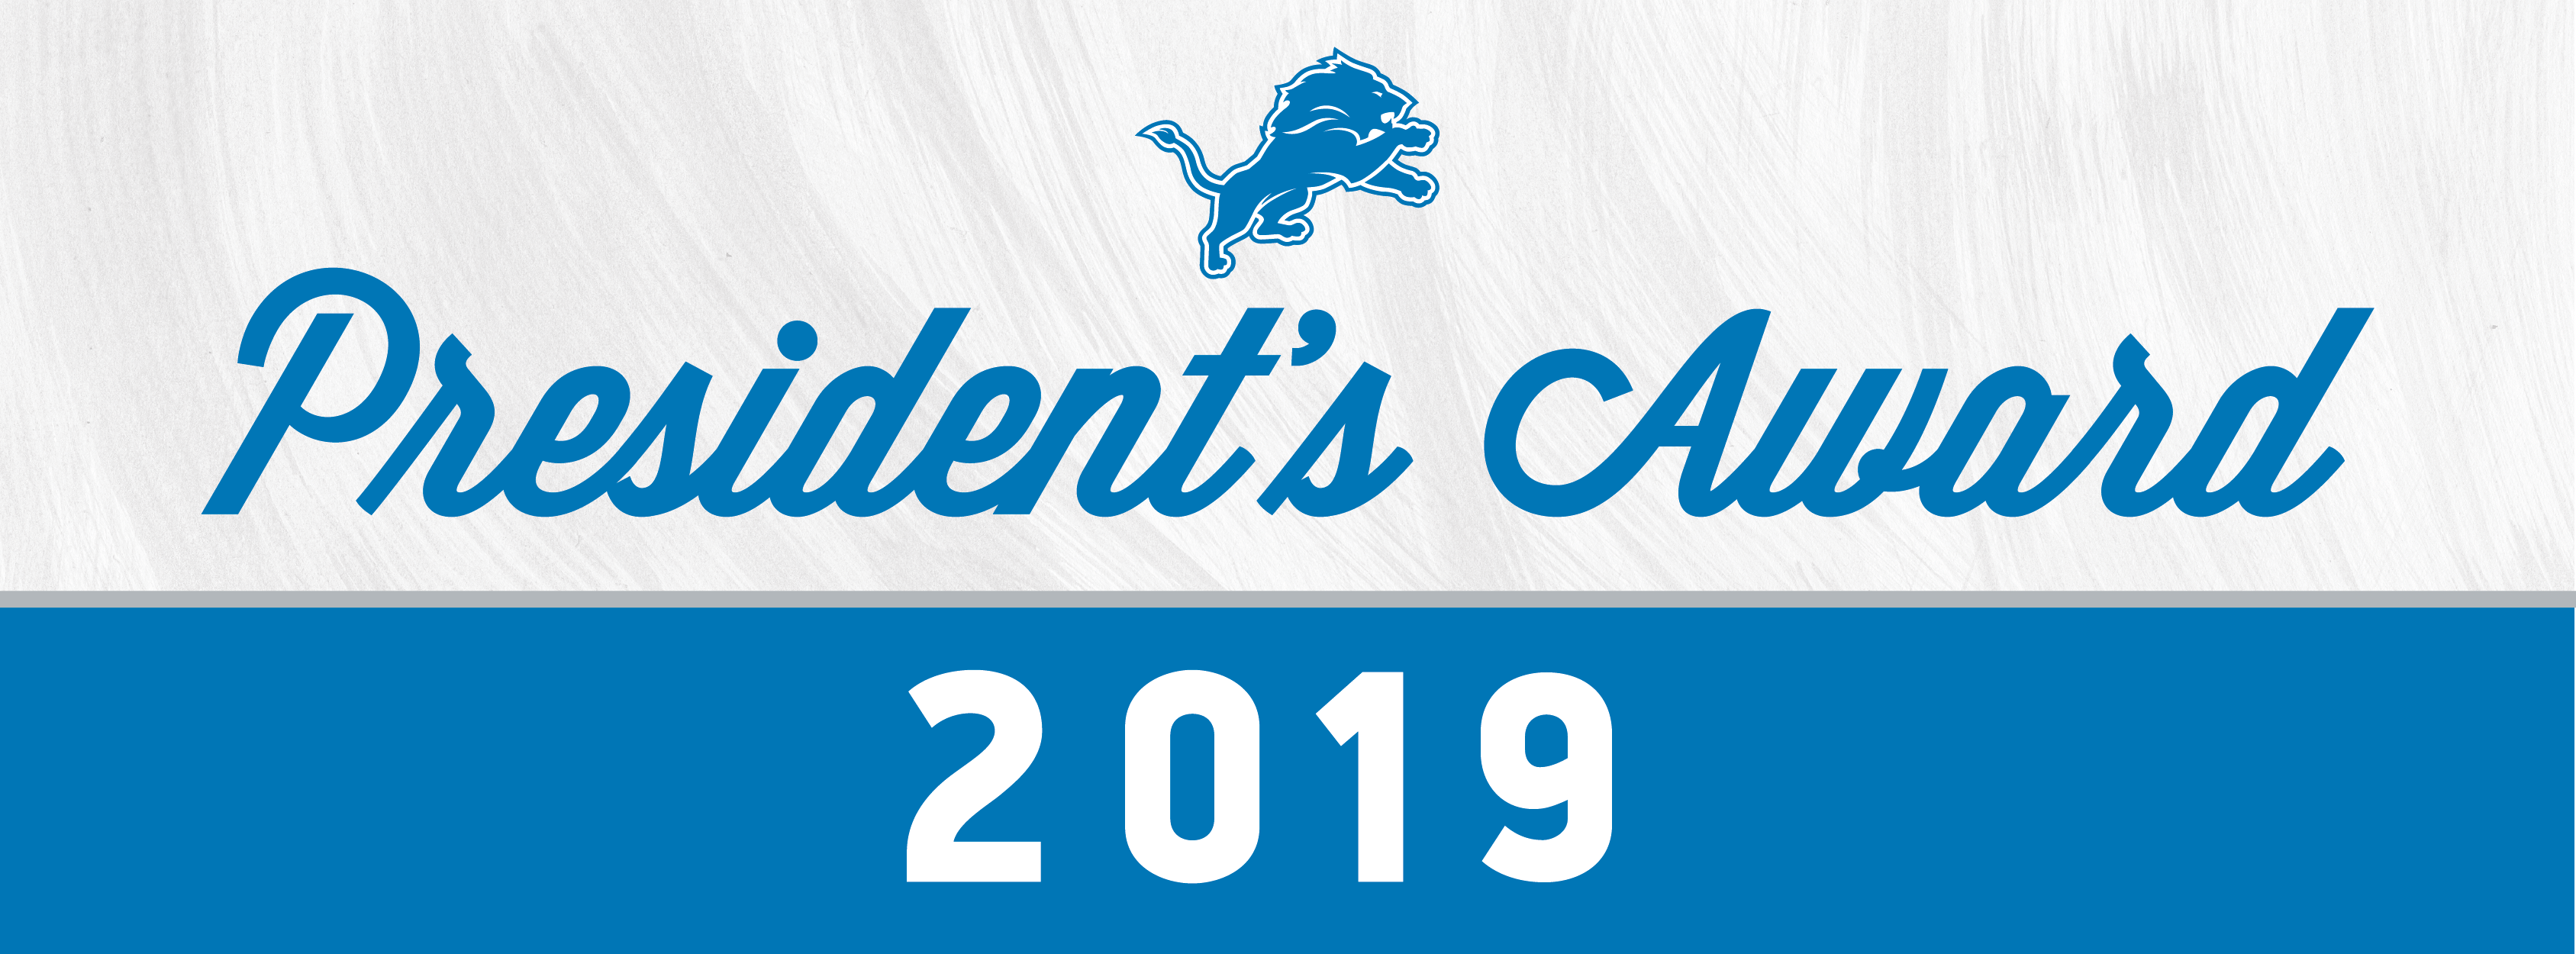 2019_PRESIDENTS_AWARD_BANNER